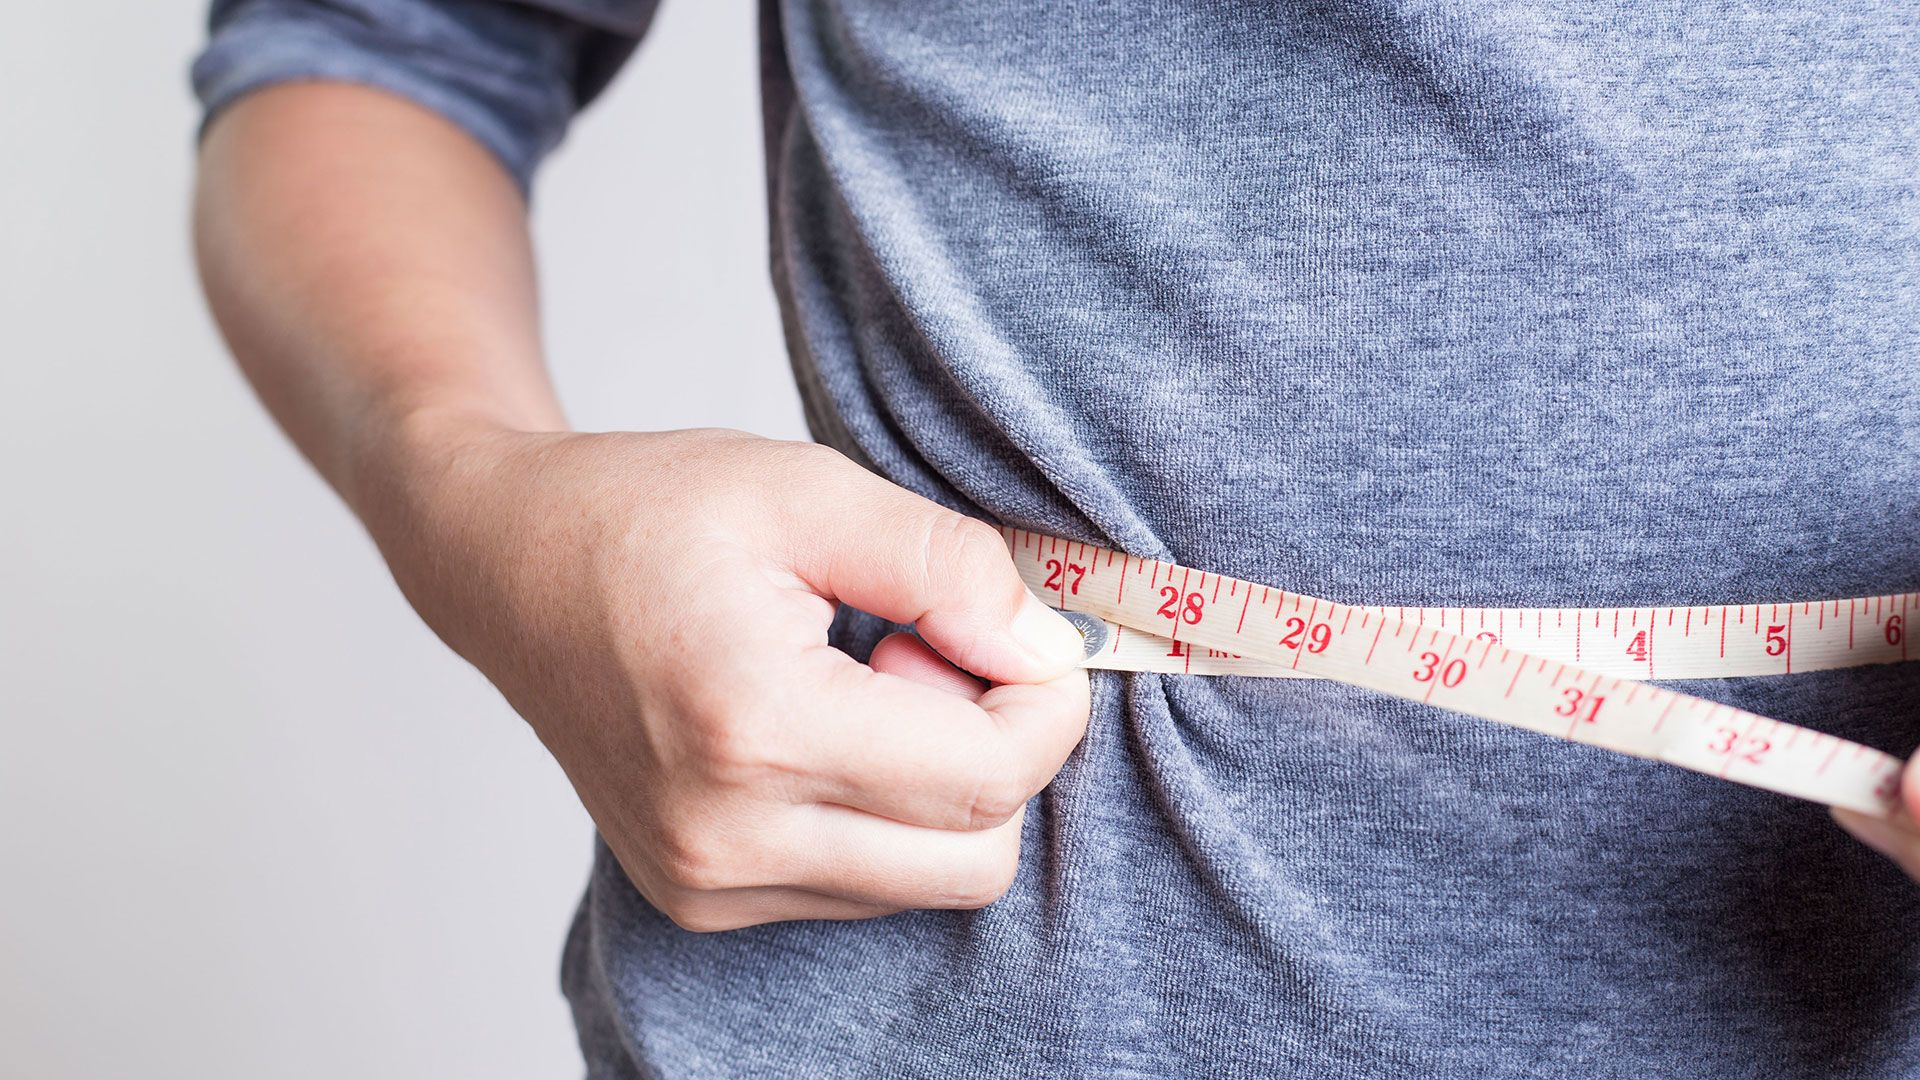 Weight Loss Could Reverse Type 2 Diabetes—Plus 9 Other Things to Know About the Condition